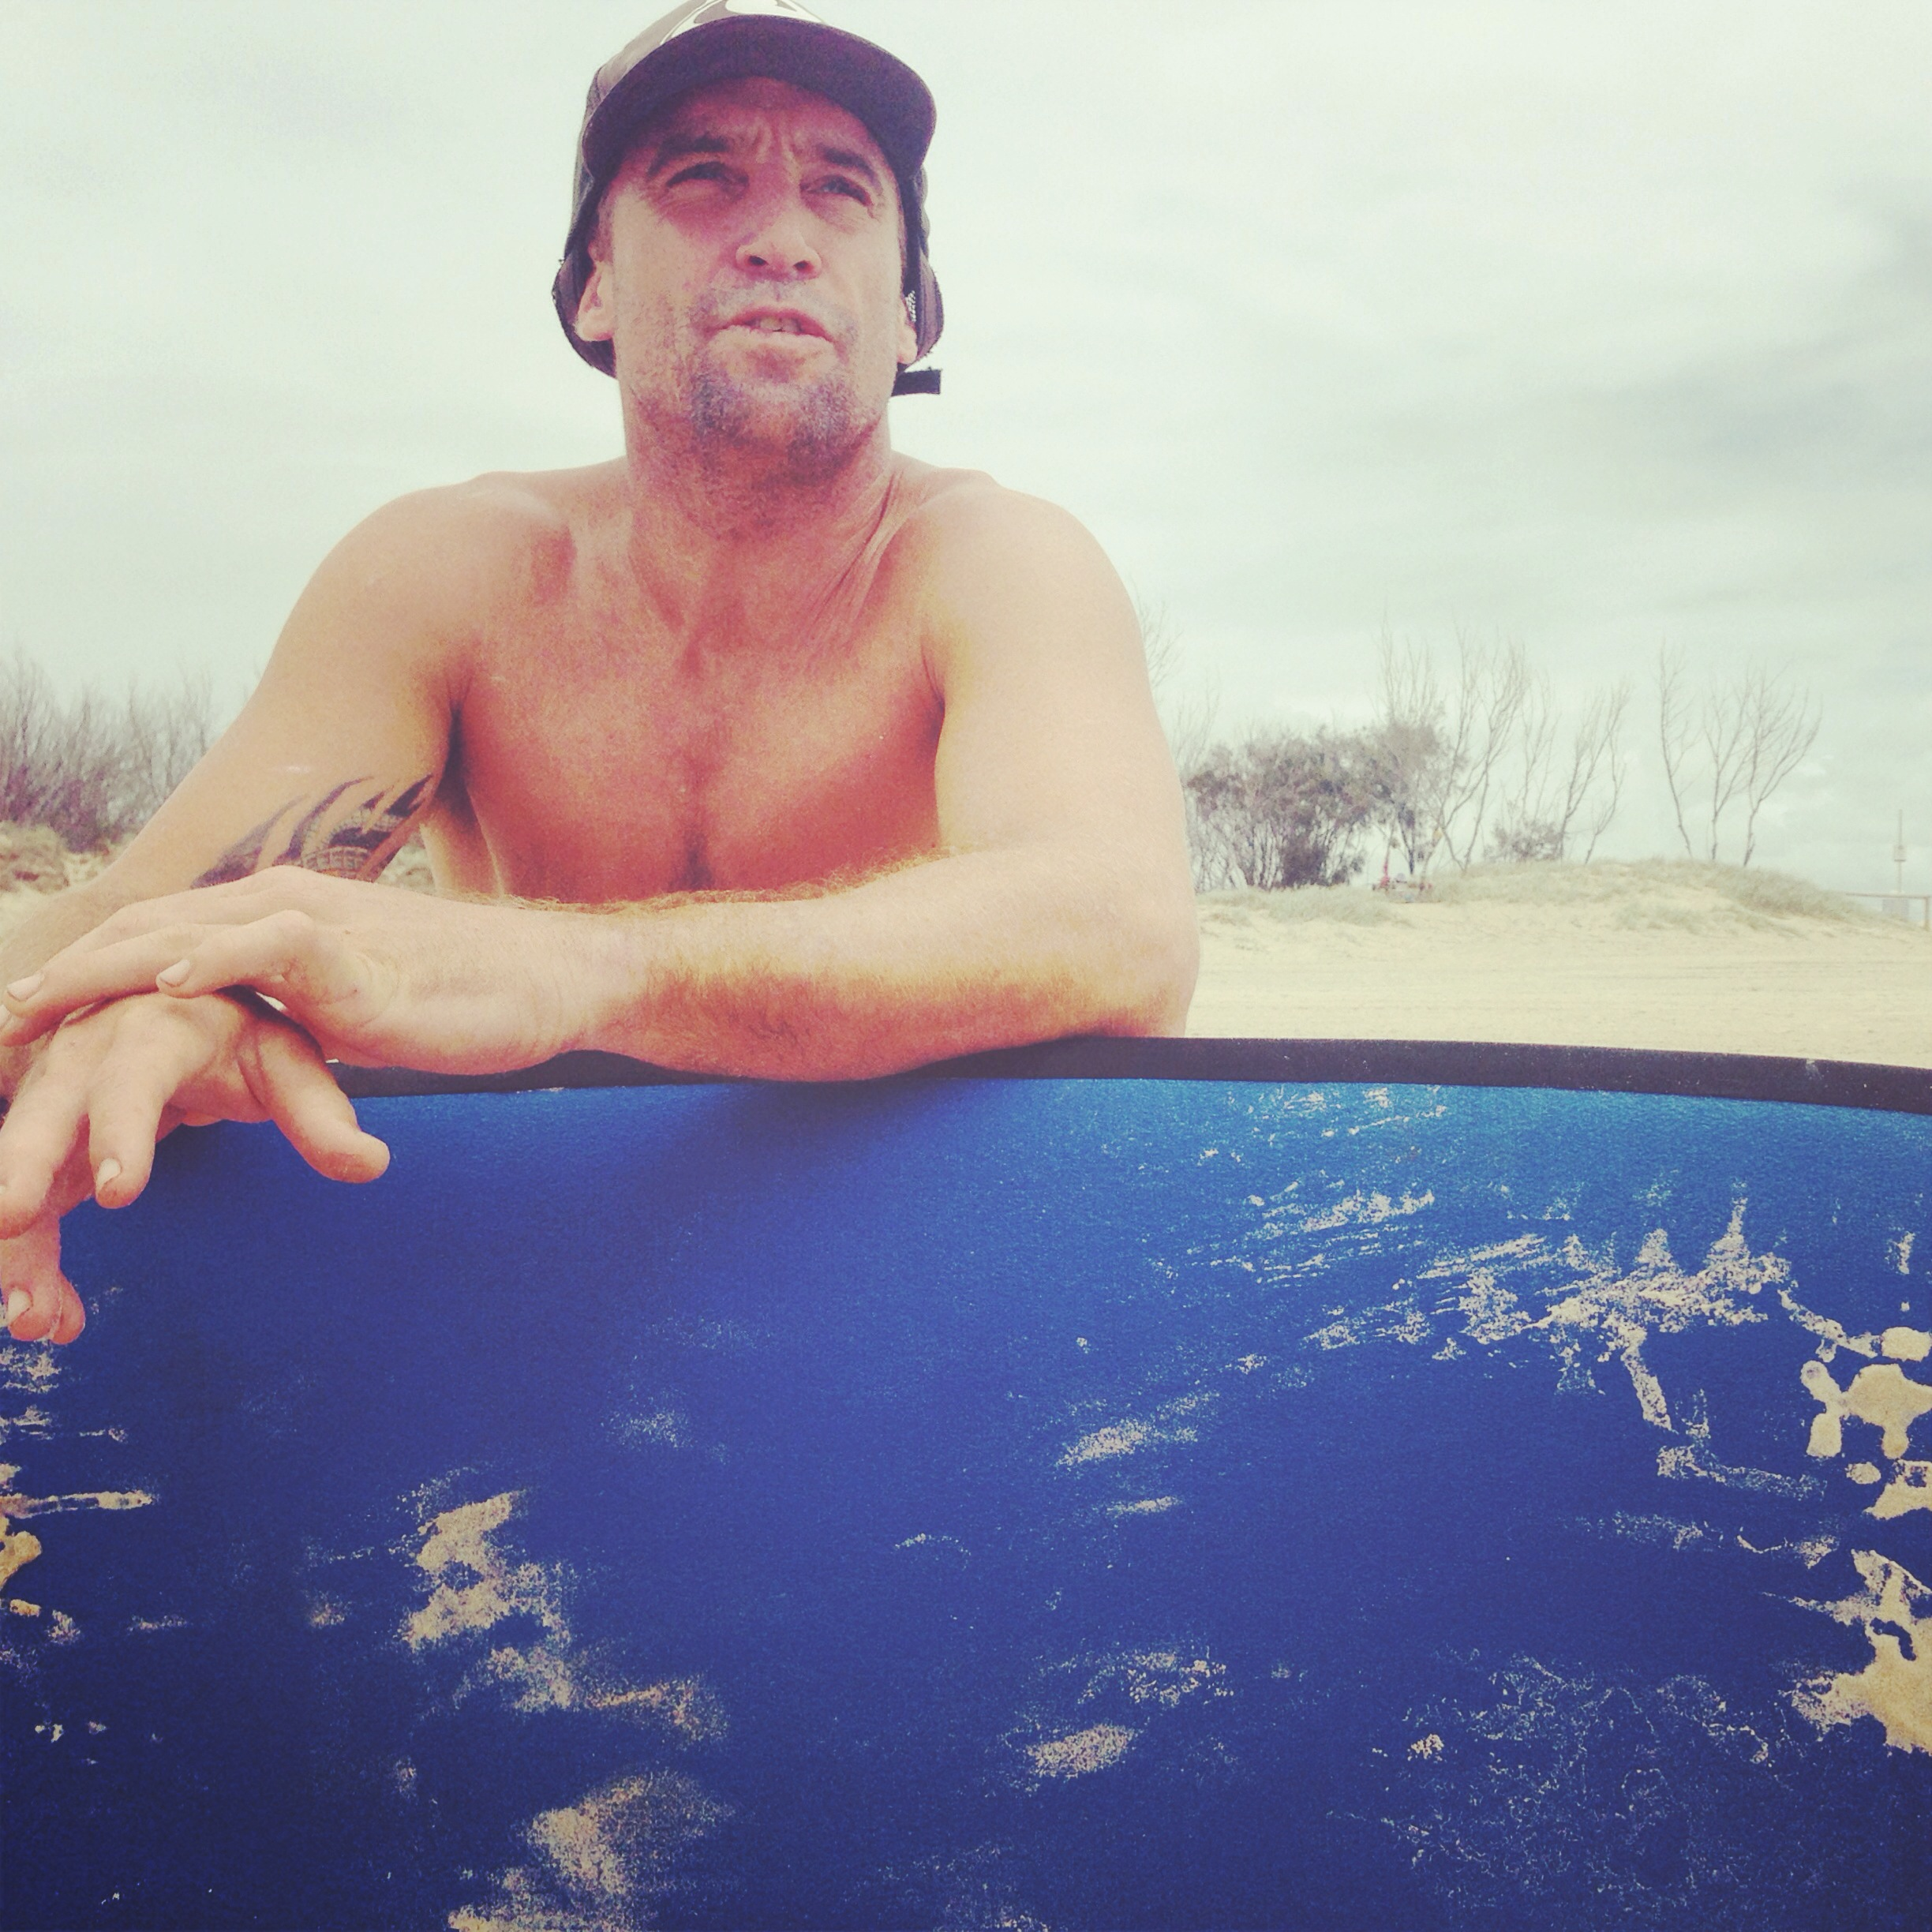 Our intrepid surf instructor, Craig